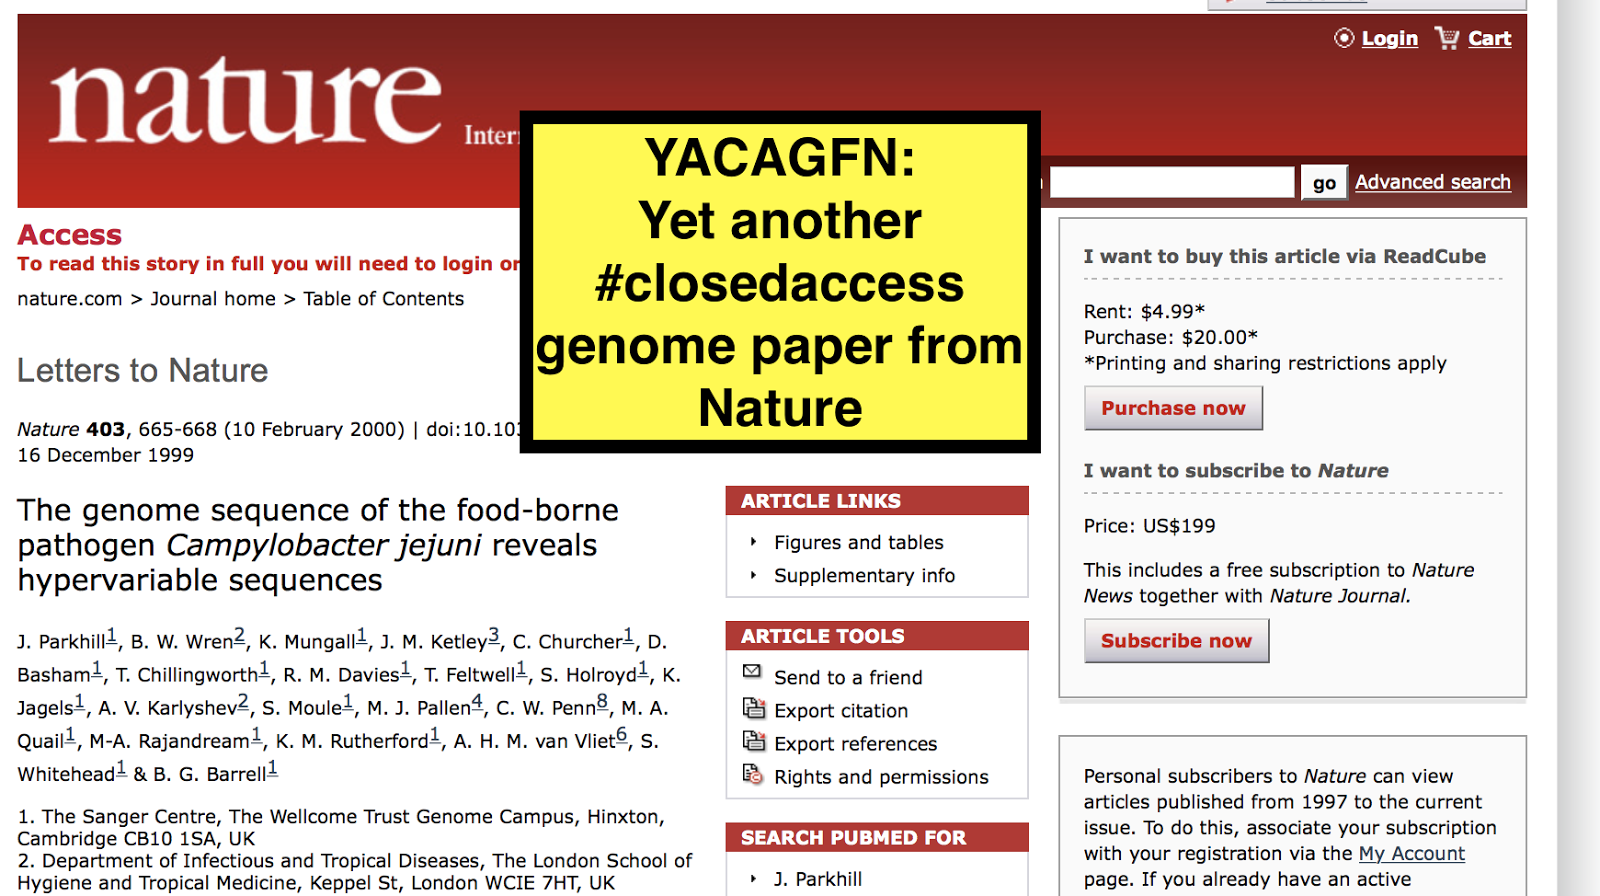 The Tree of Life: Nature Publishing Group continues to